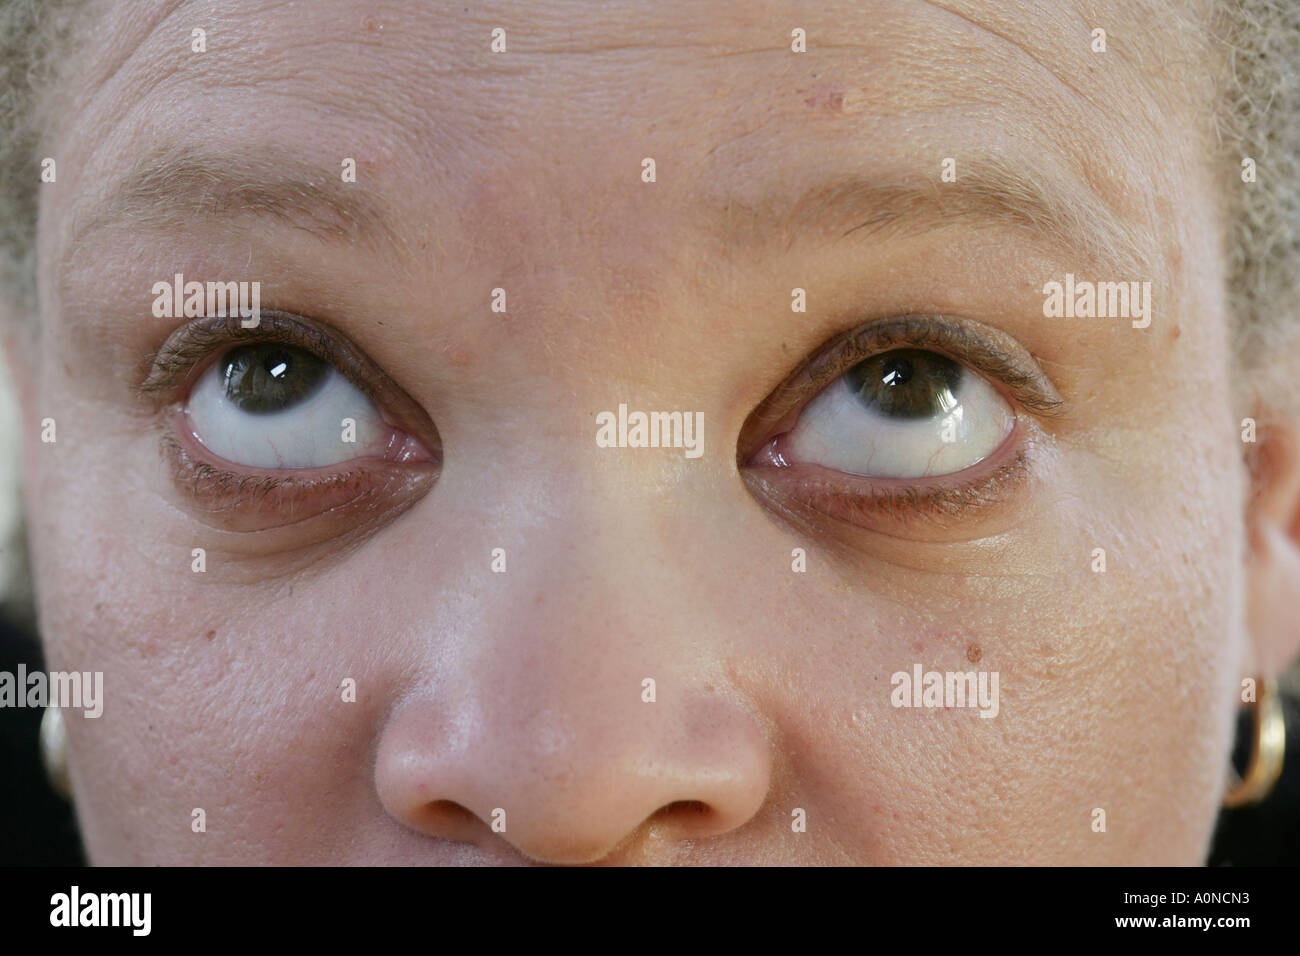 Part of a series of nine gaze positions.Search on CMSP NYSTAGMUS to see the entire serices. - Stock Image